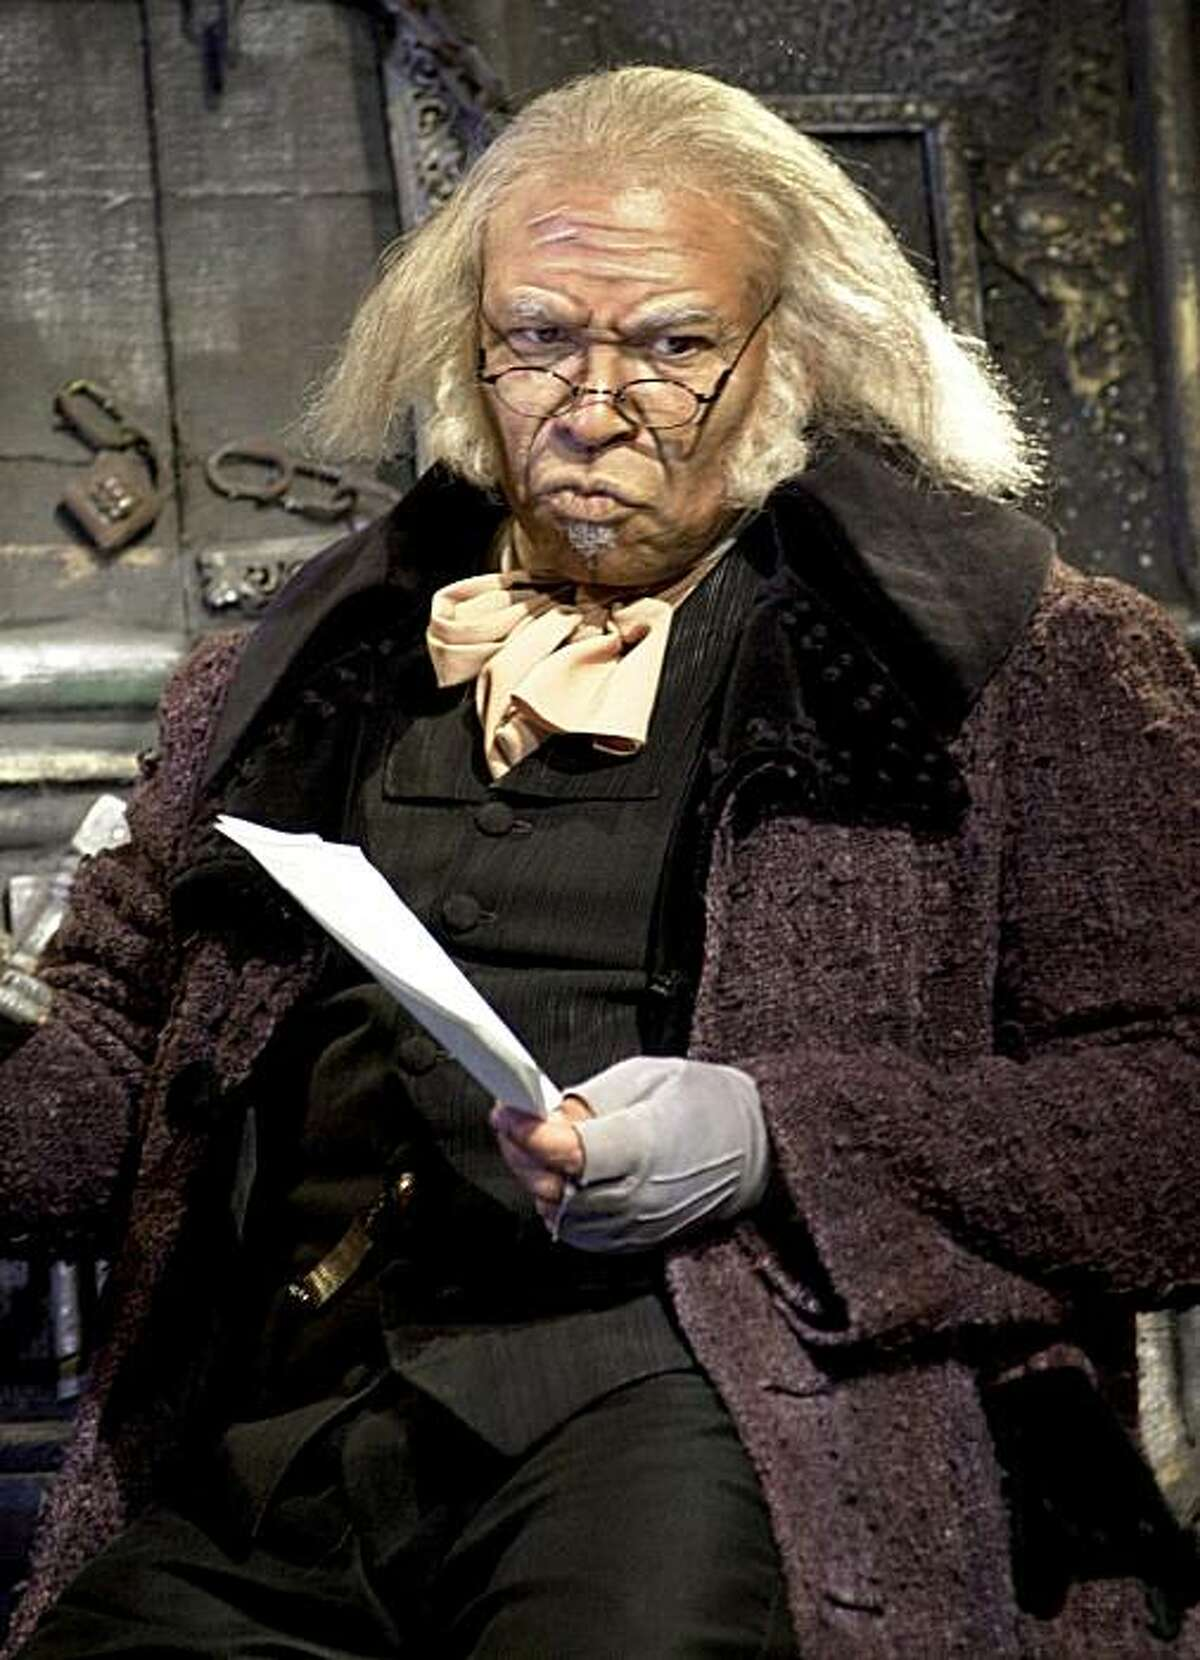 Steven Anthony Jones is the black man who plays an deliciously nasty Scrooge in